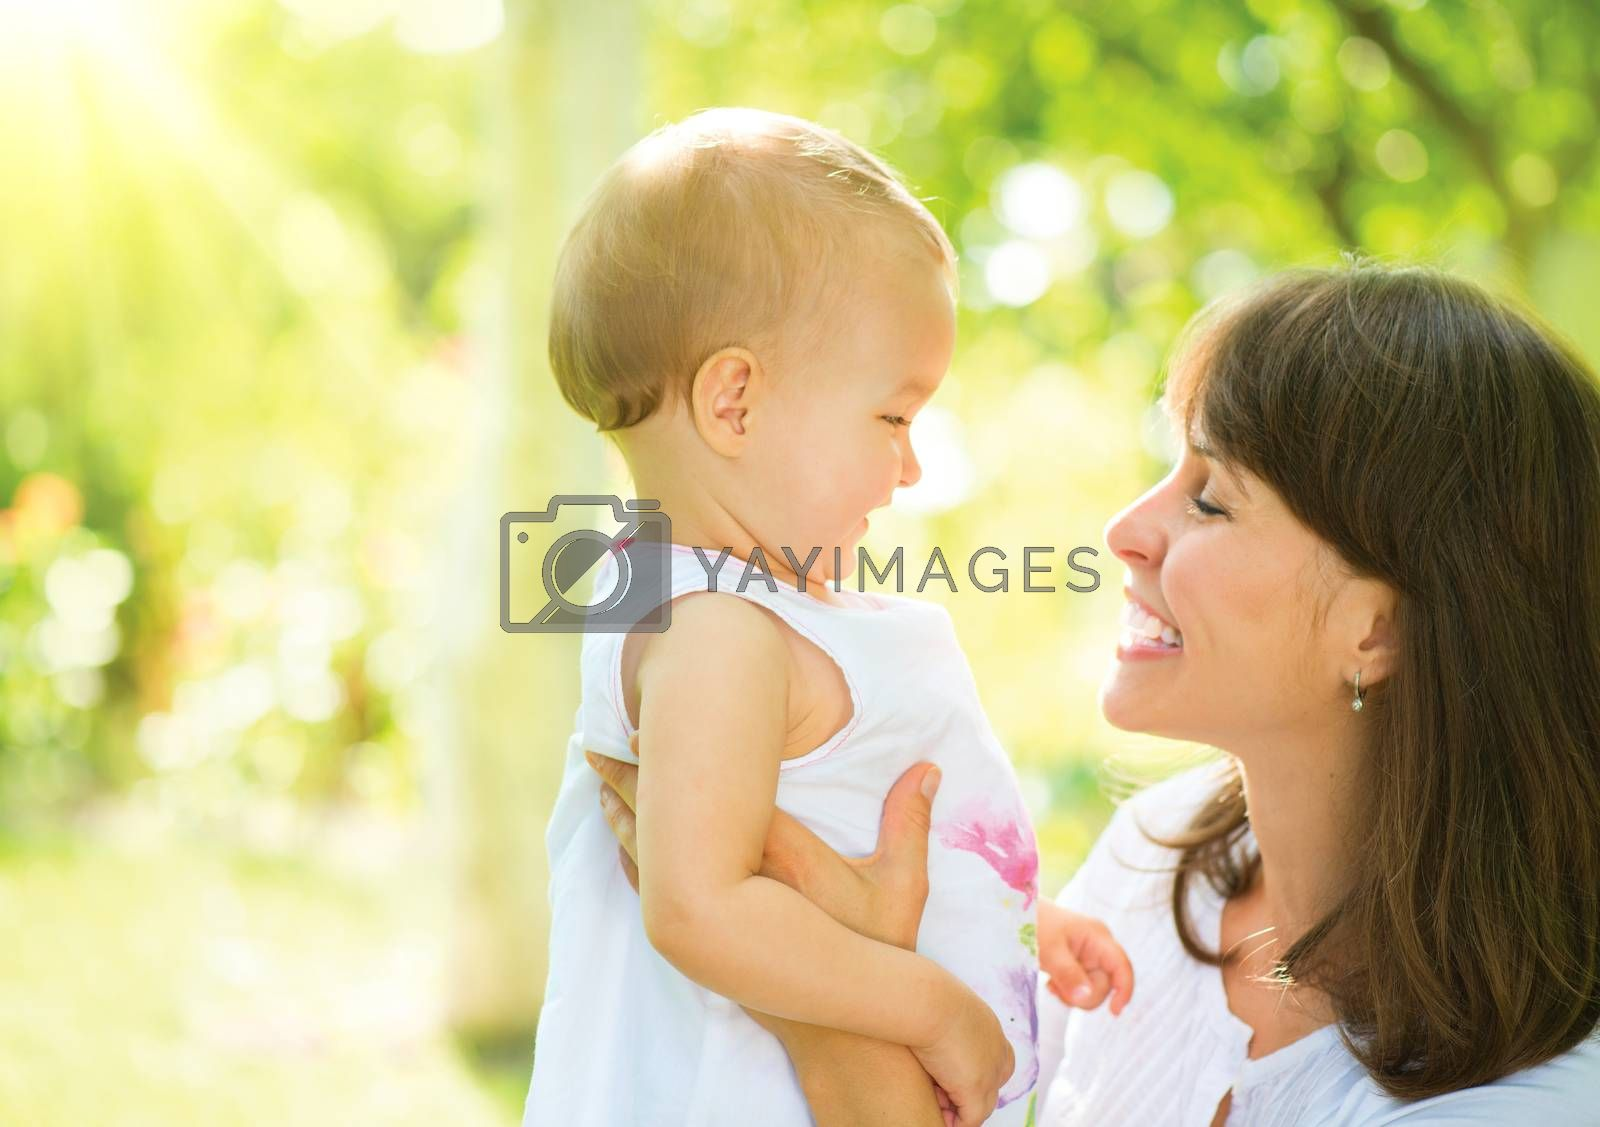 Beautiful Mother And Baby Outdoors. Nature by Subbotina Anna